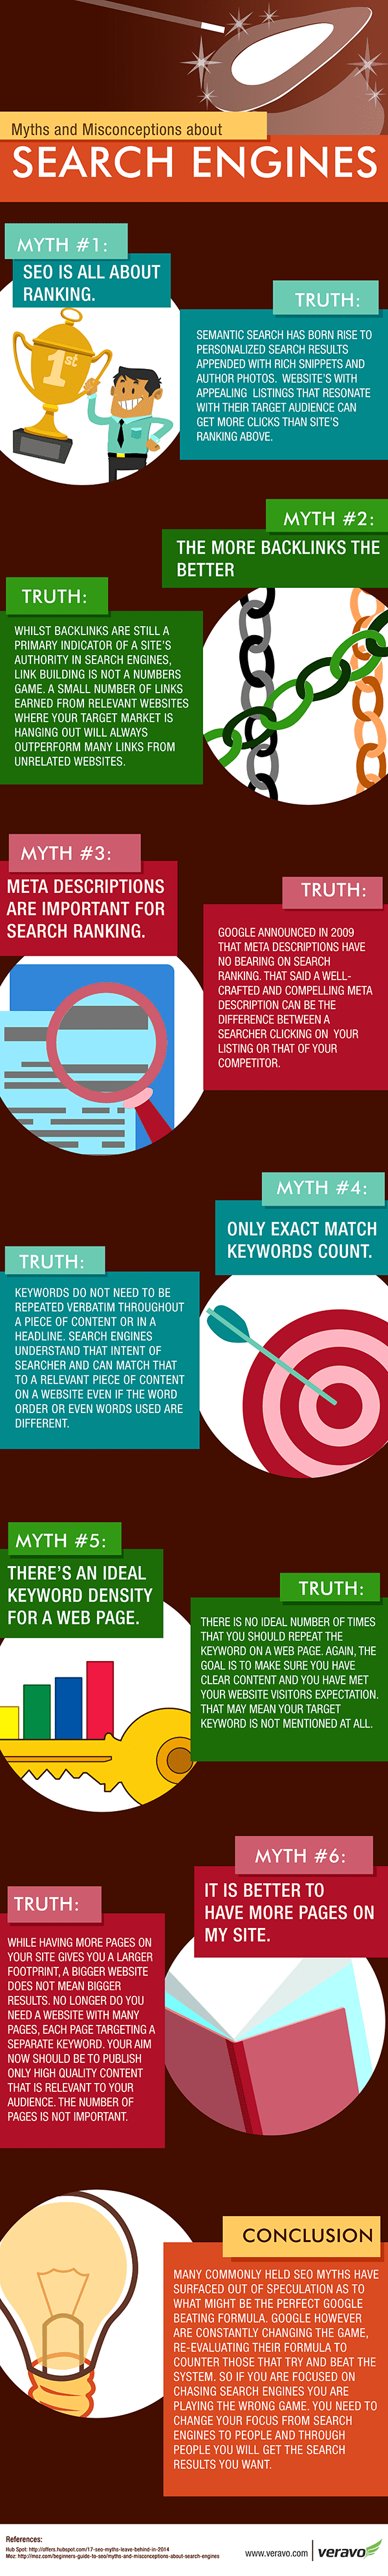 infographie-6-mythes-referencement-1